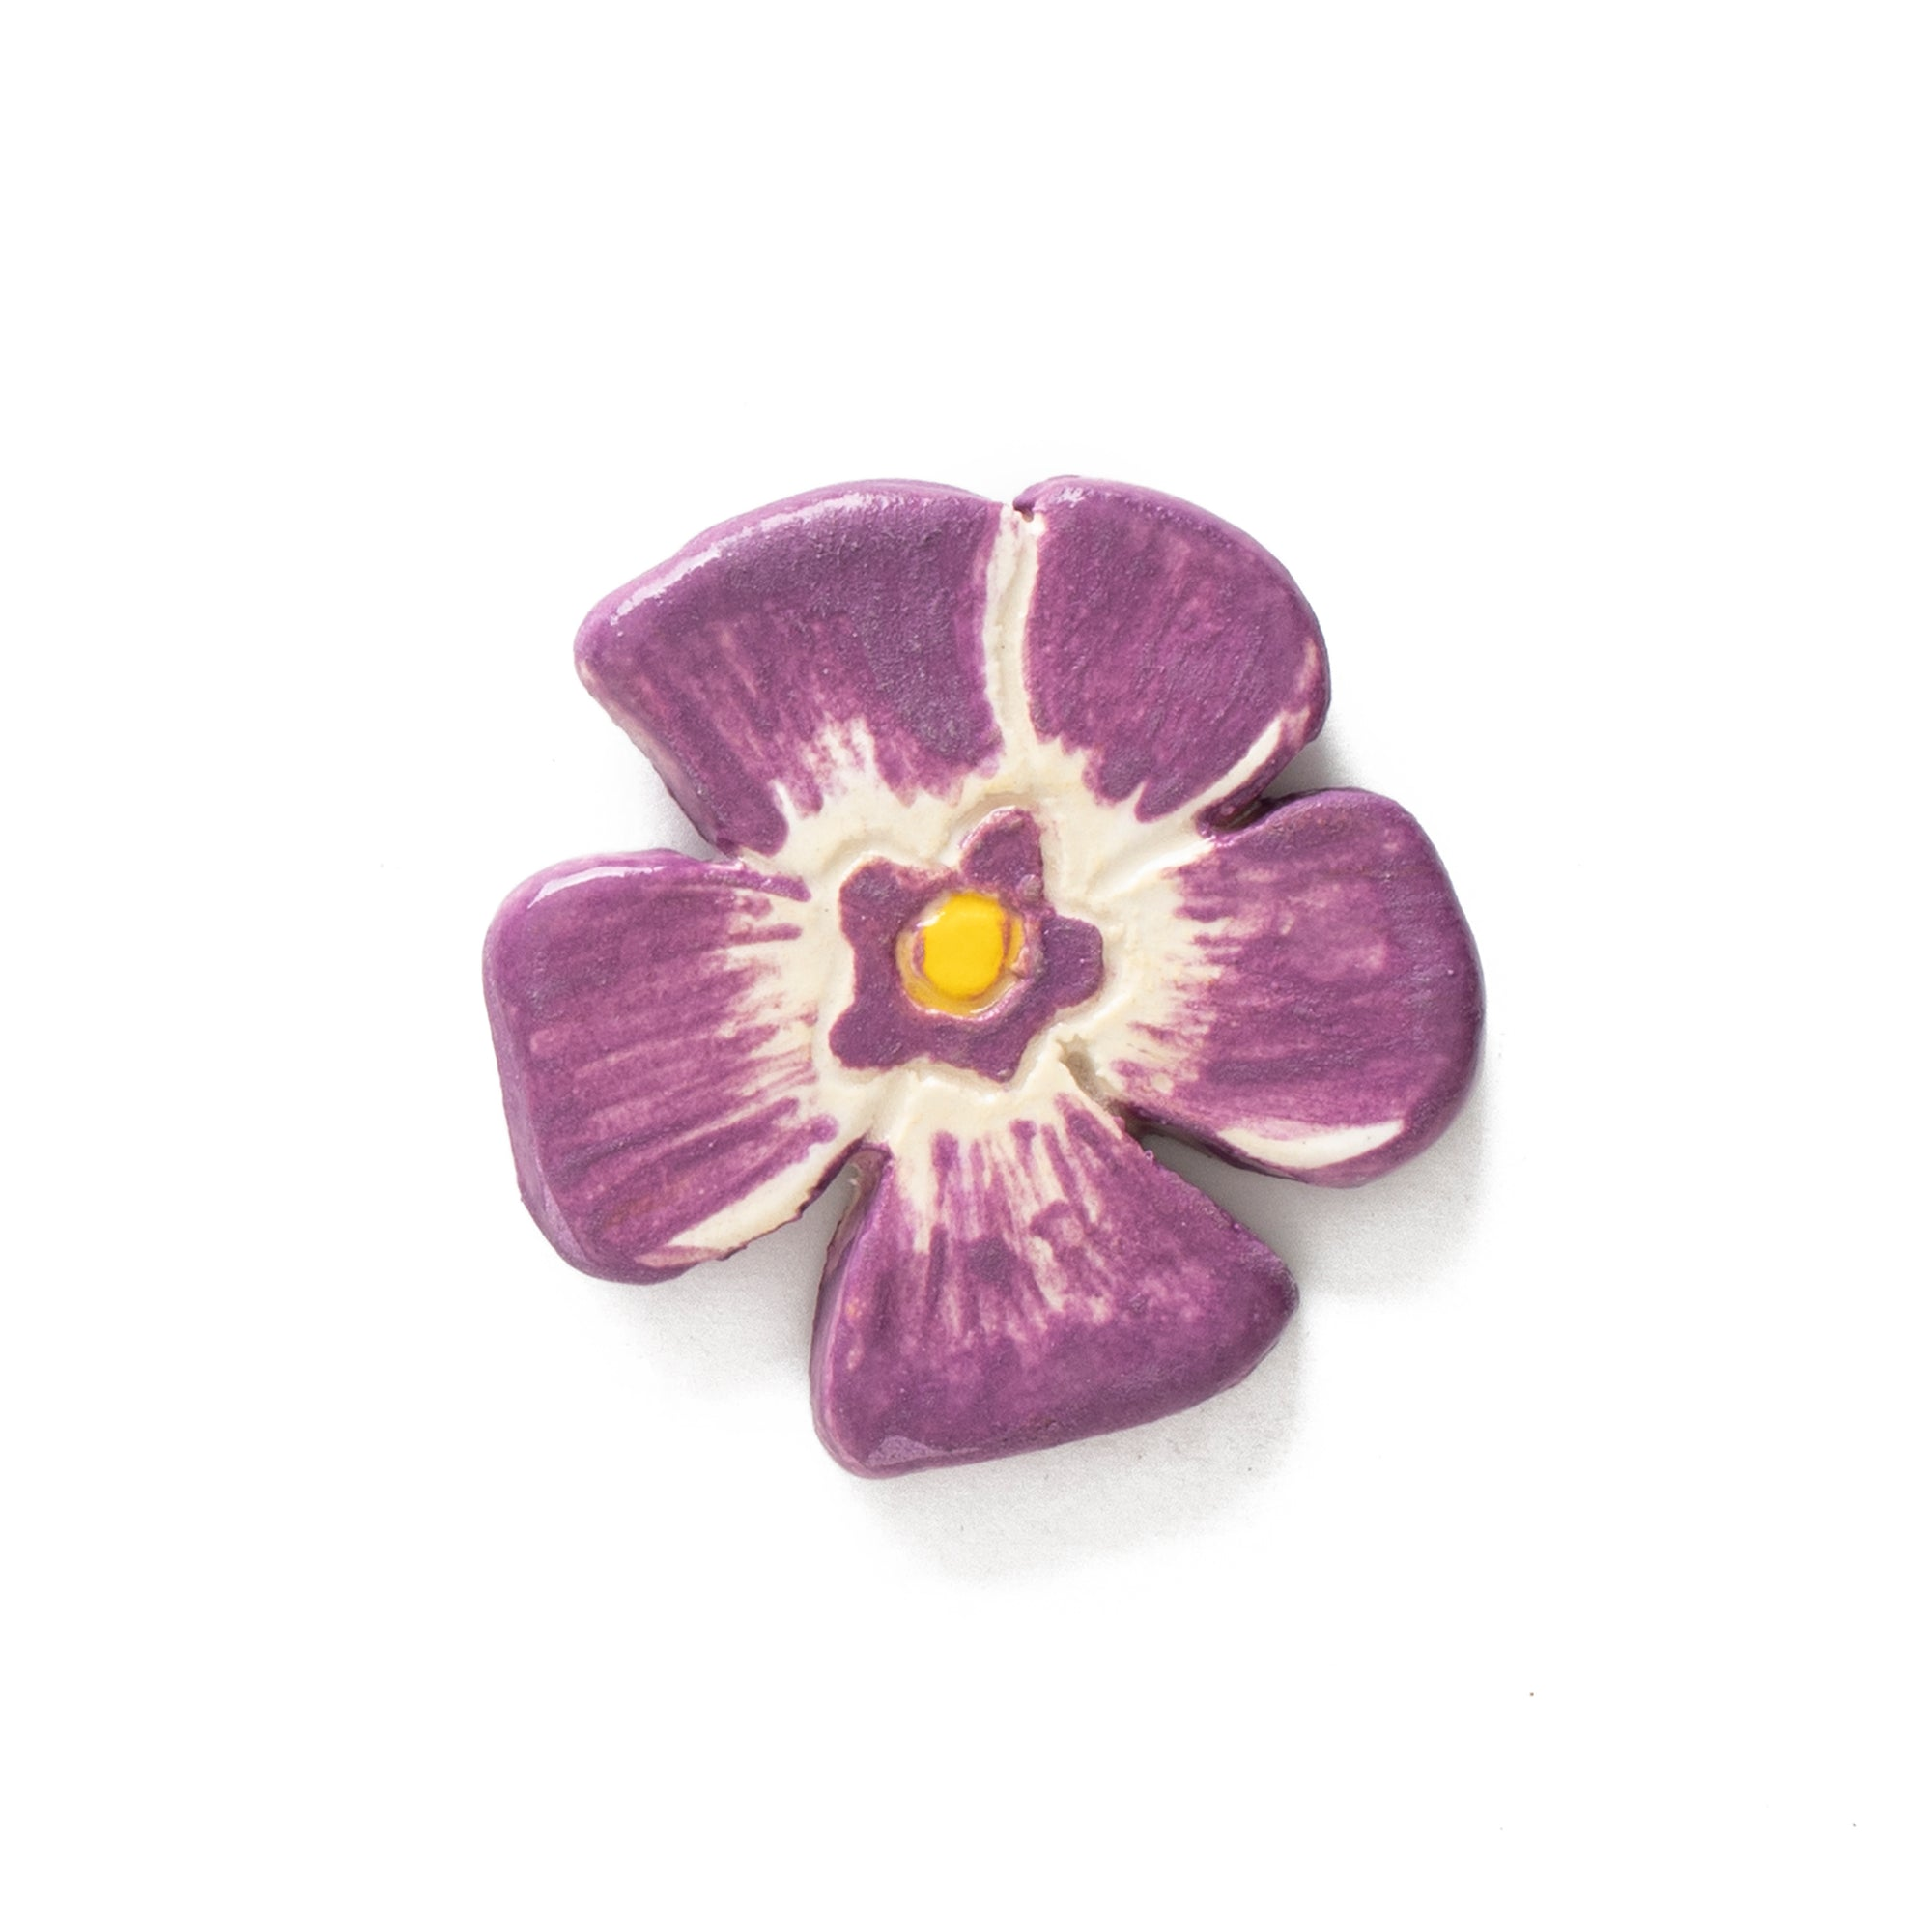 Periwinkle Ceramic Pin